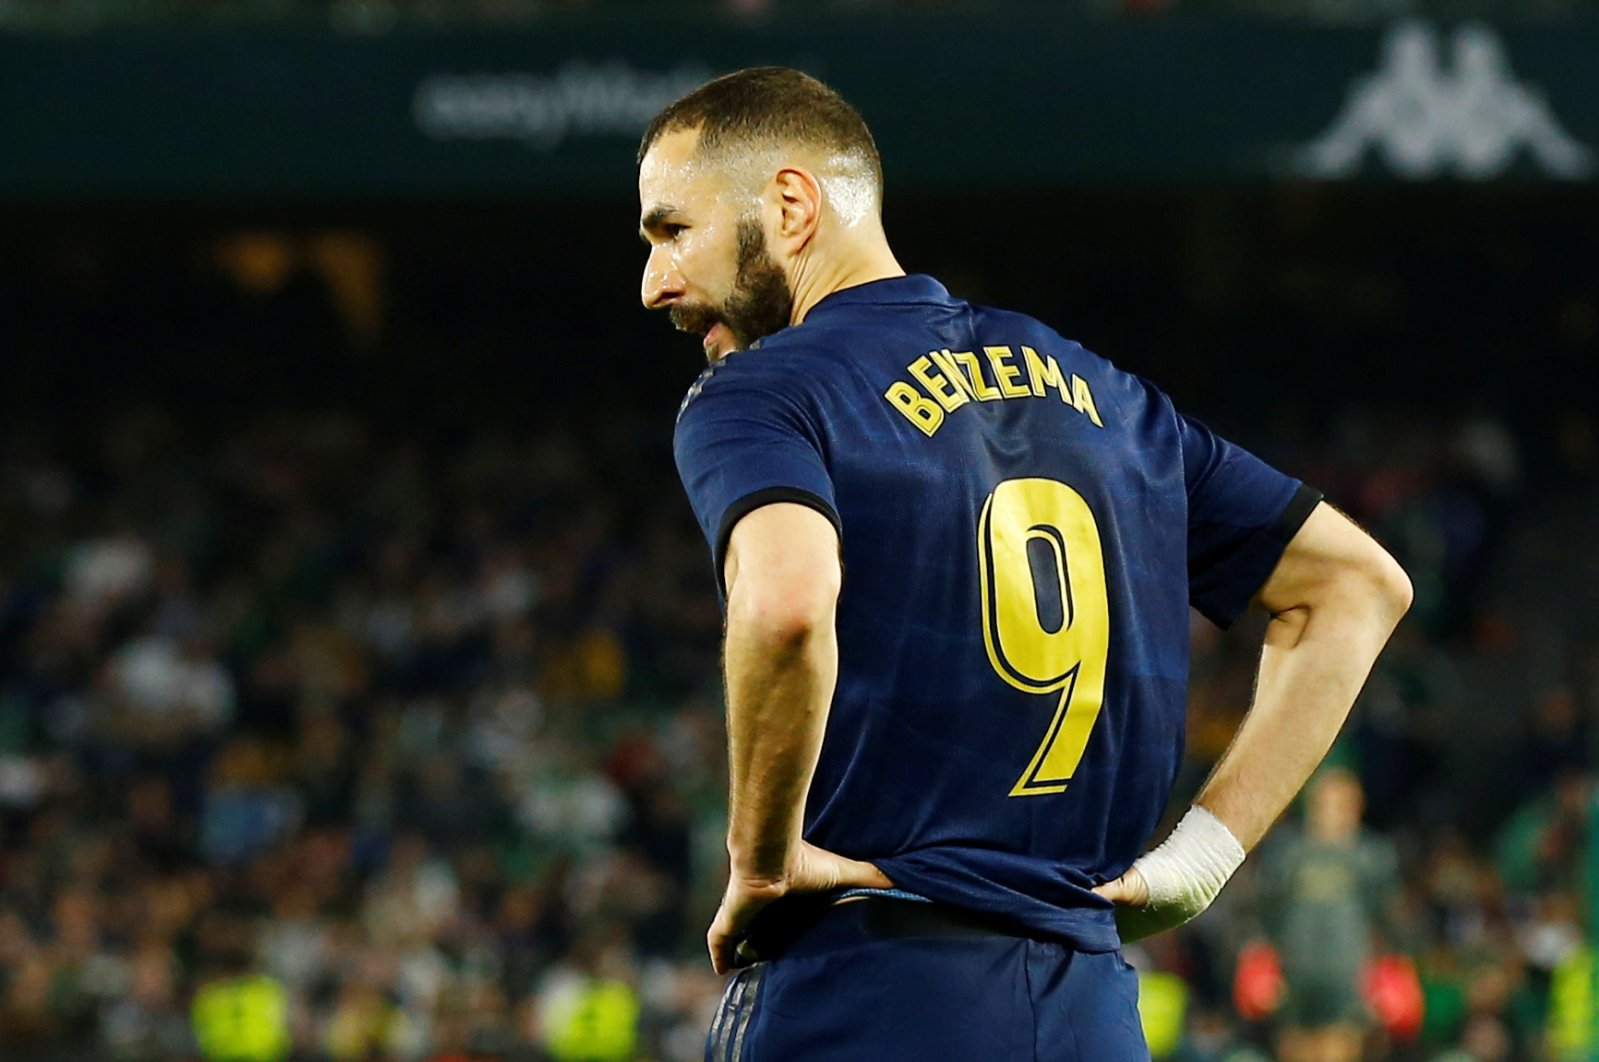 Real Madrid's Karim Benzema reacts during a La Liga match against Real Betis in Seville, Spain, March 8, 2020. (Reuters Photo)